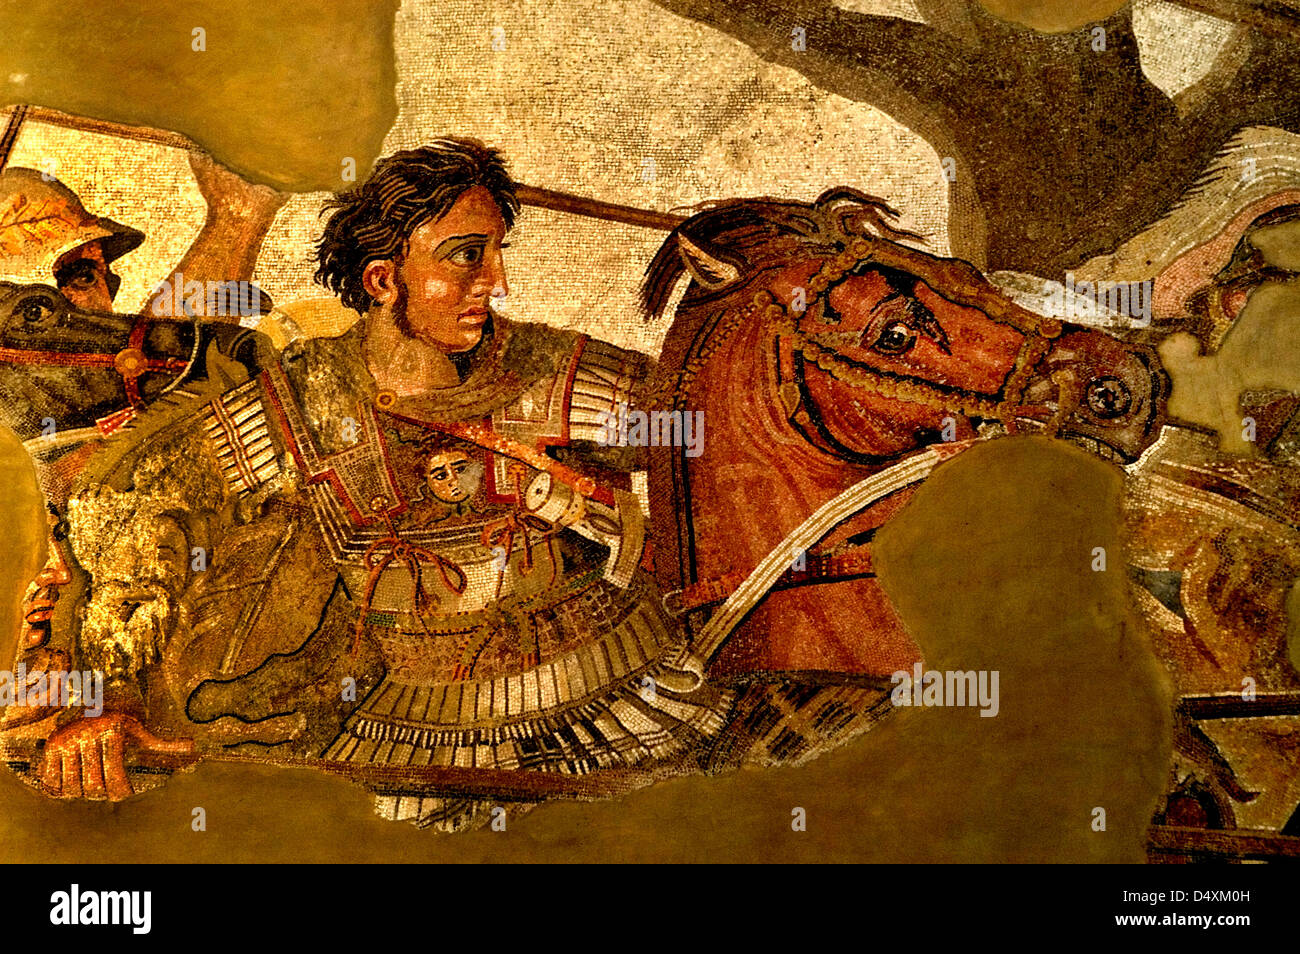 This image is Alexander  the Great in battle Persian King Darius III Alexander  the Great Issus 331 B. C . Mosaic - Stock Image